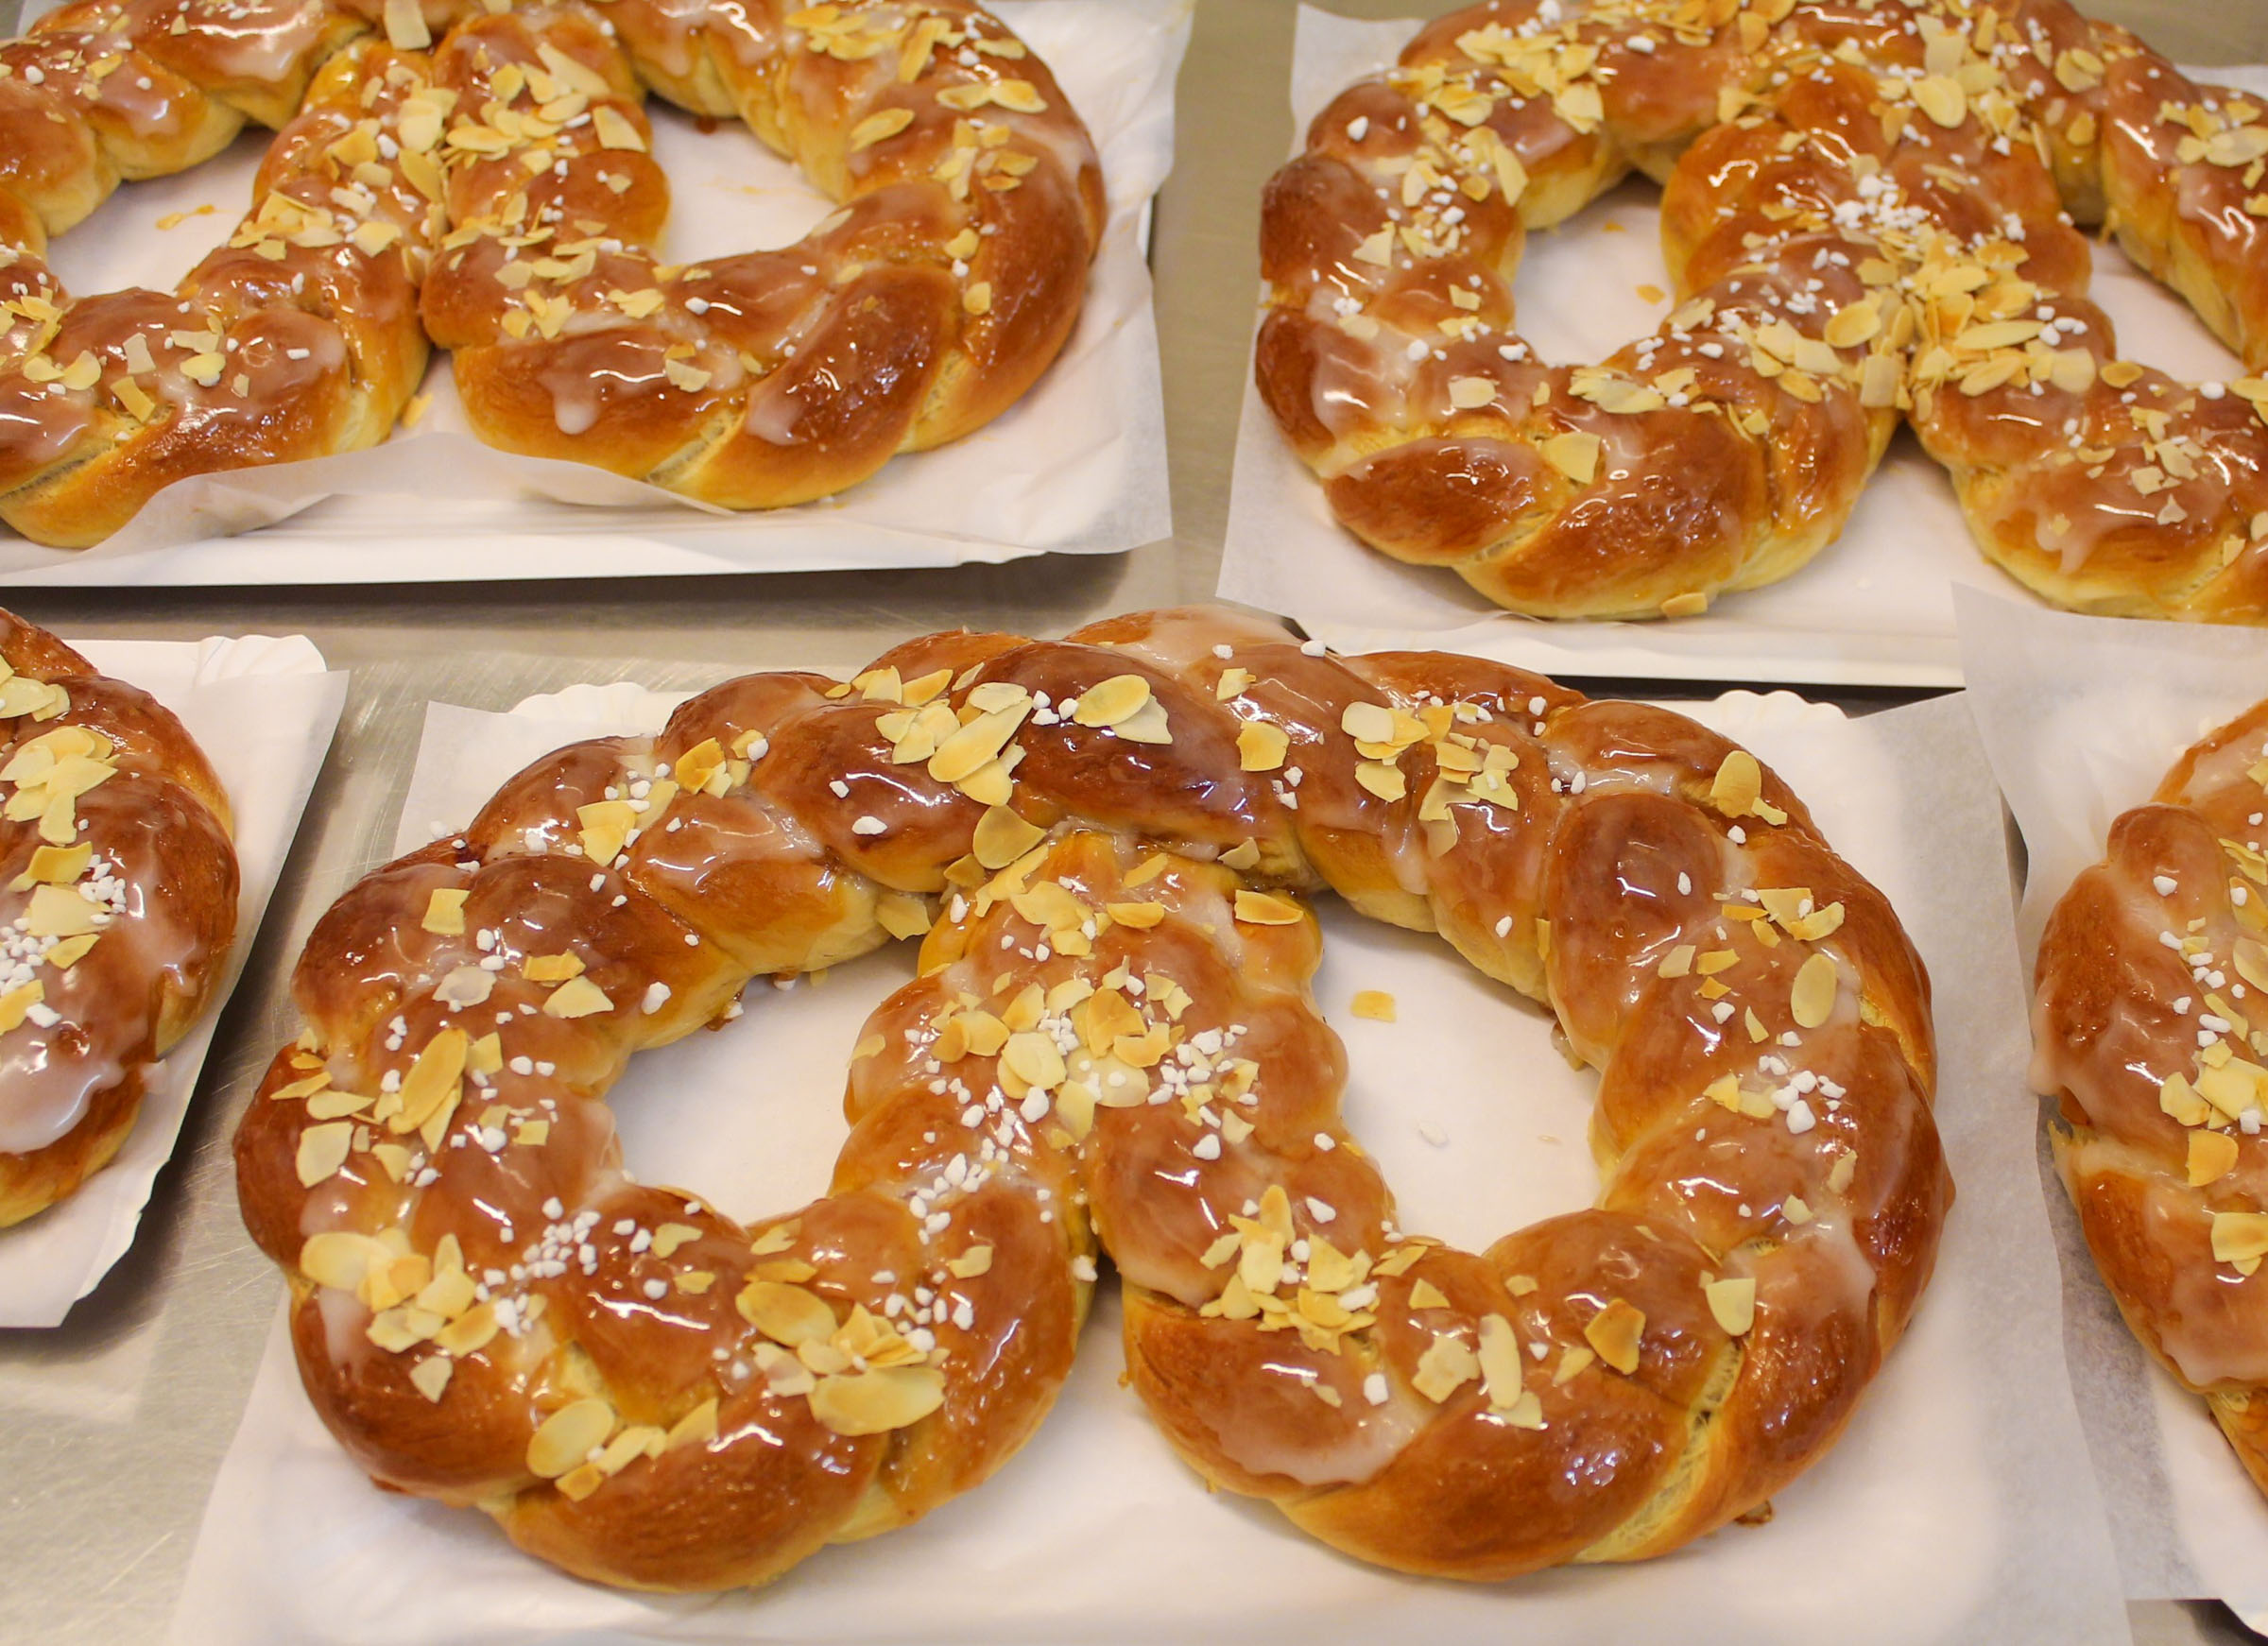 New Year's pretzel made from yeast dough - Cafe Kleimann